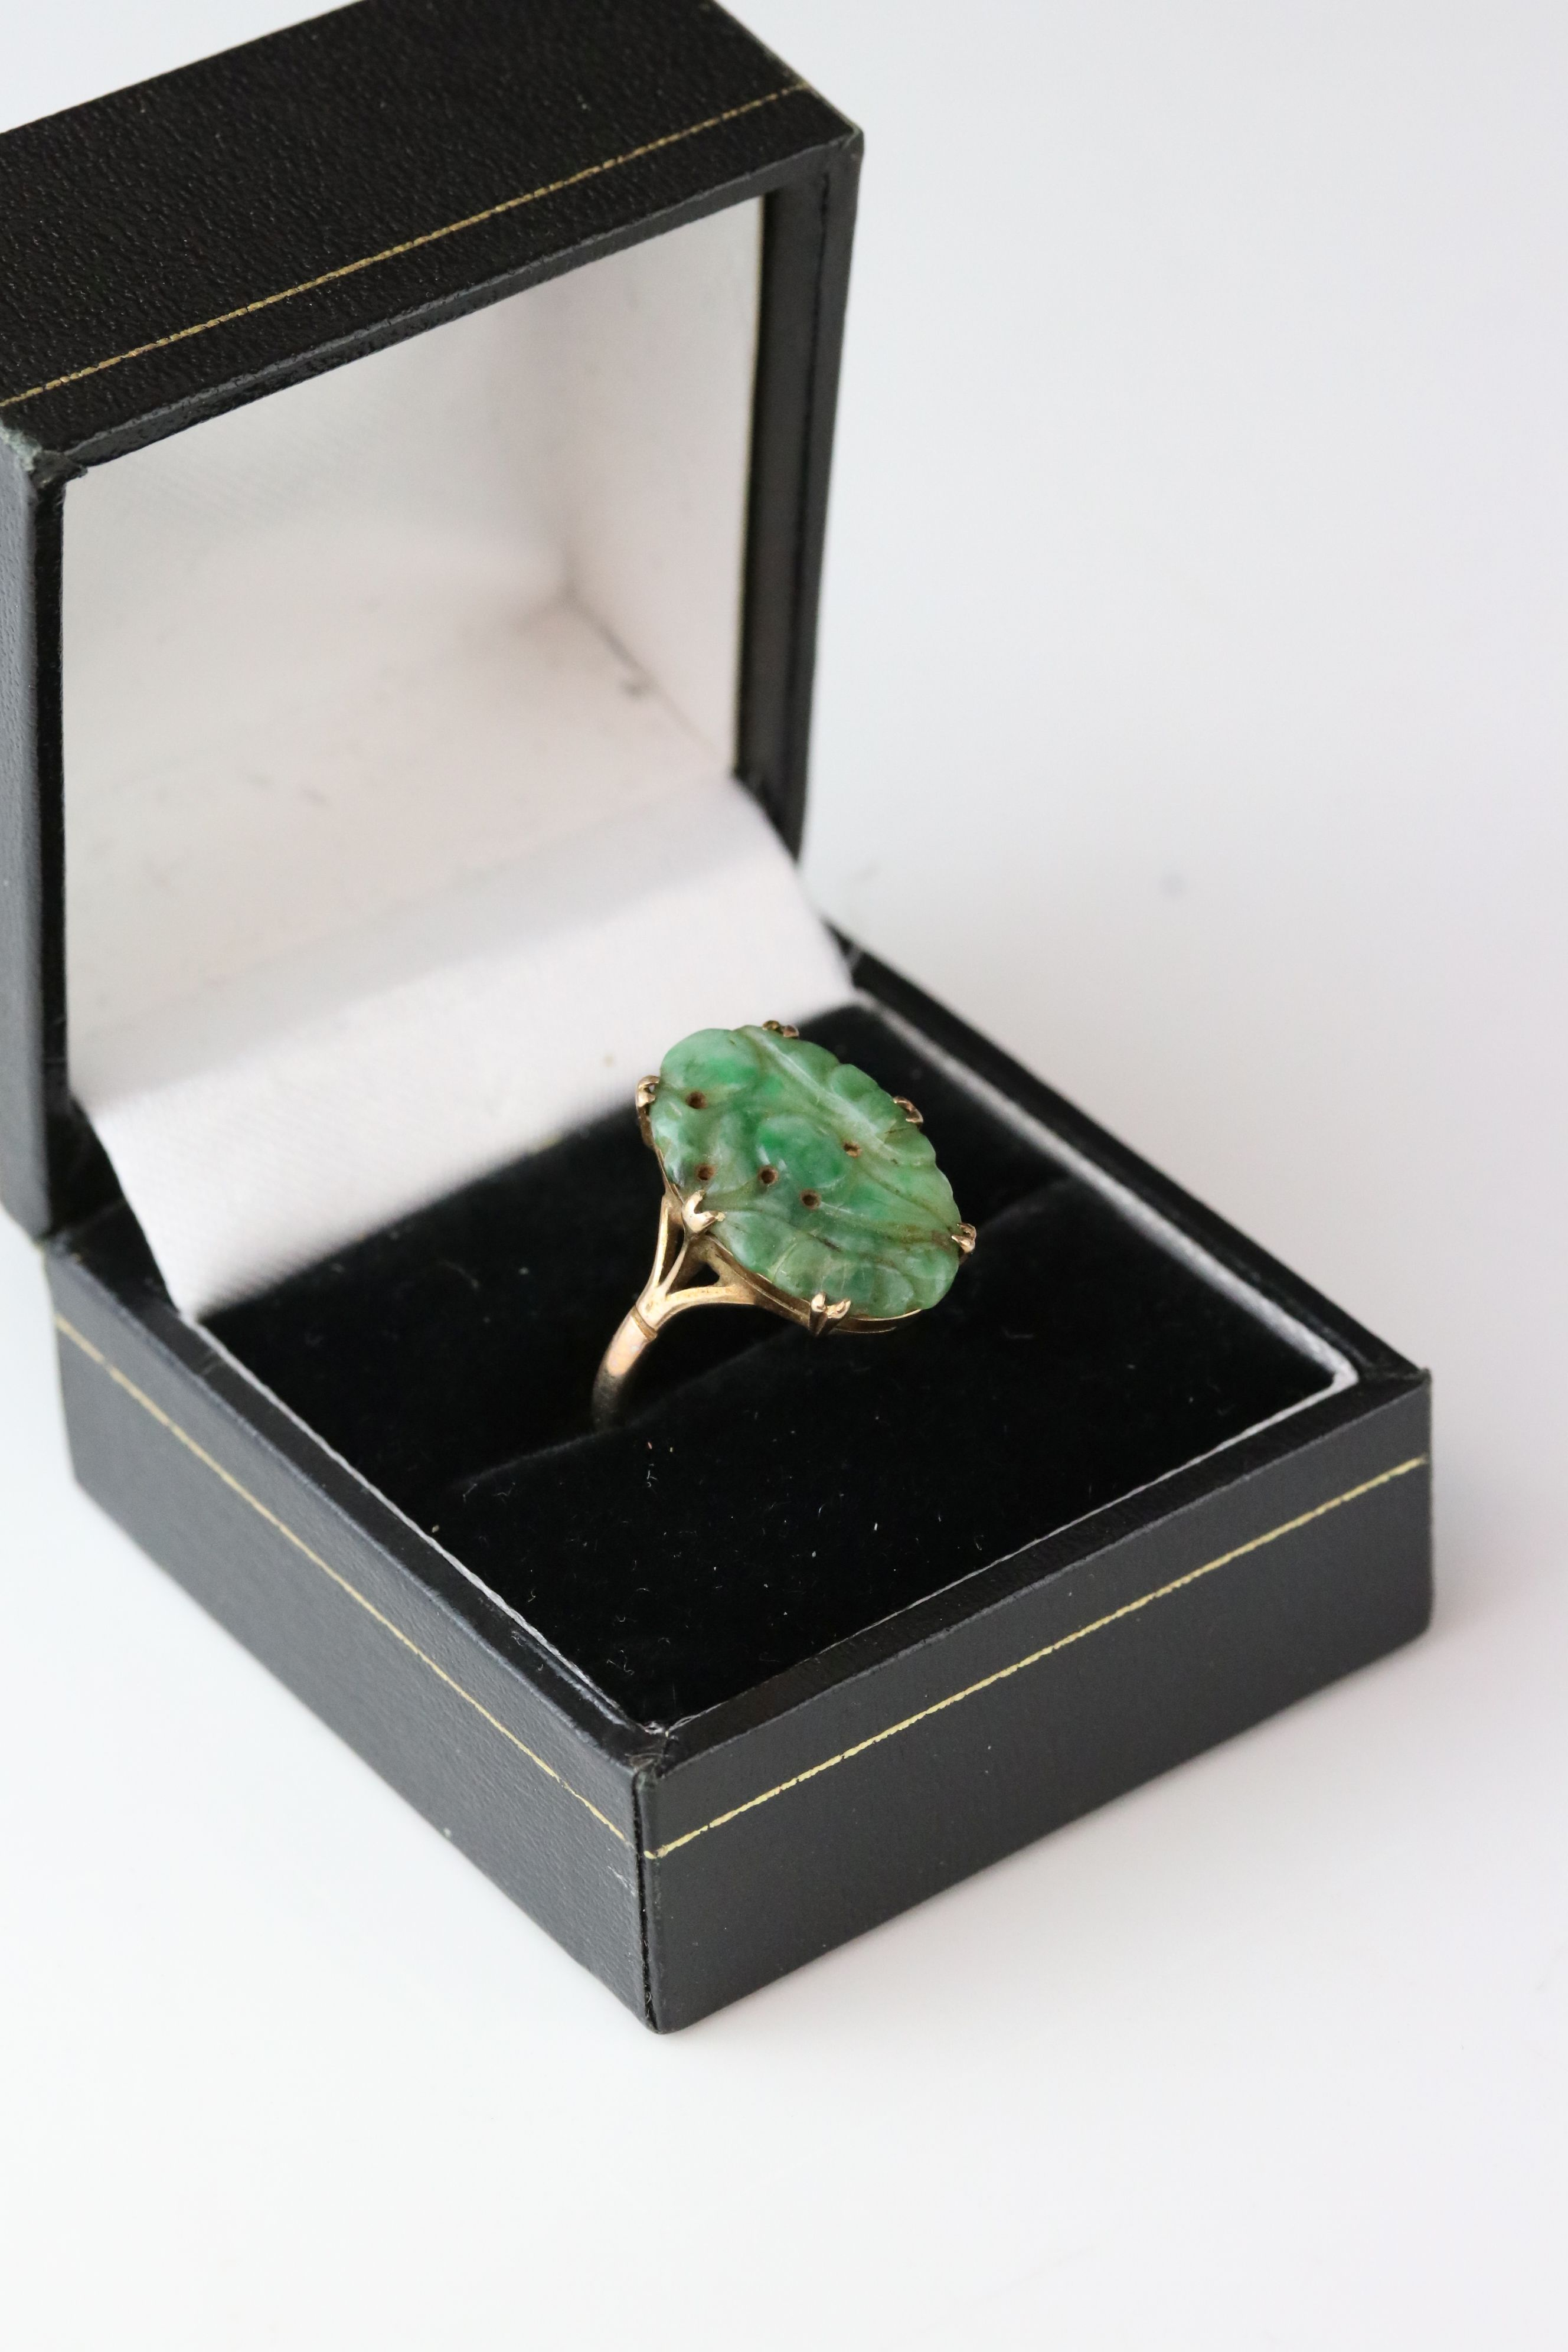 Carved jade 9ct yellow gold ring, the oval pierced carved jade measuring approx 18mm x 11.5mm,